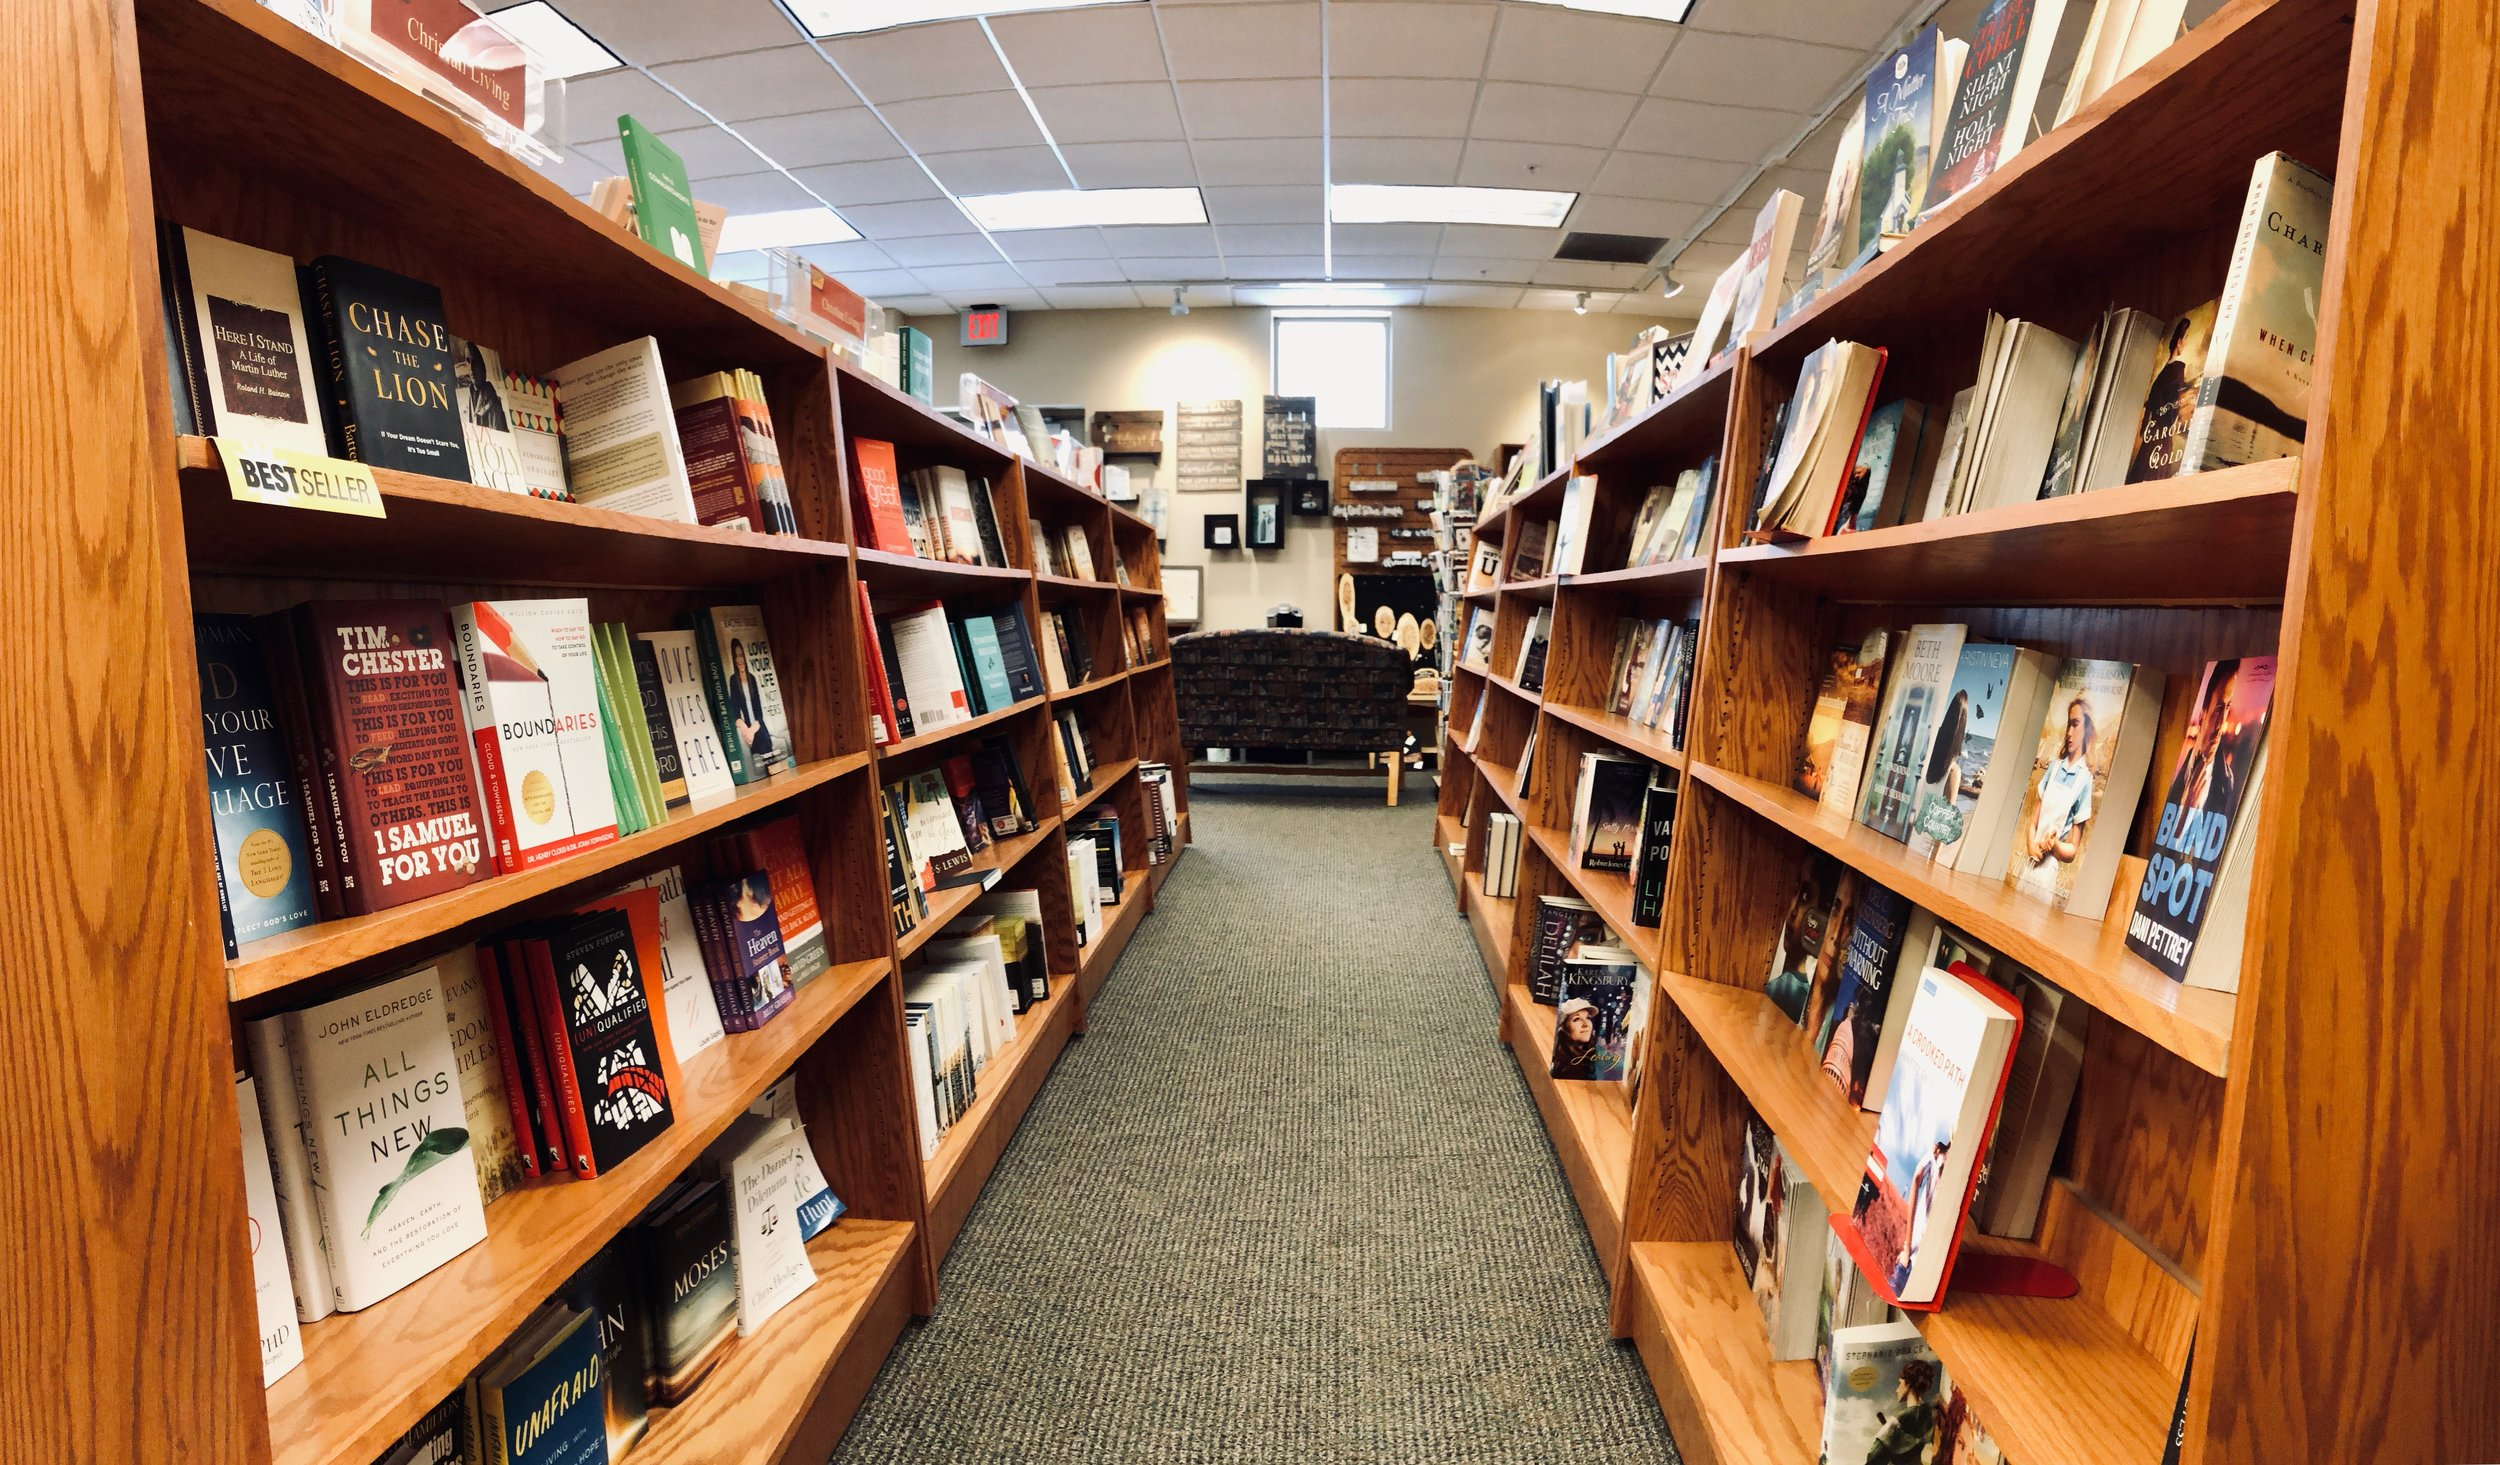 next-chapter-ministries-christos-bookcenter-book-shelves-autumn-ridge-church.JPG